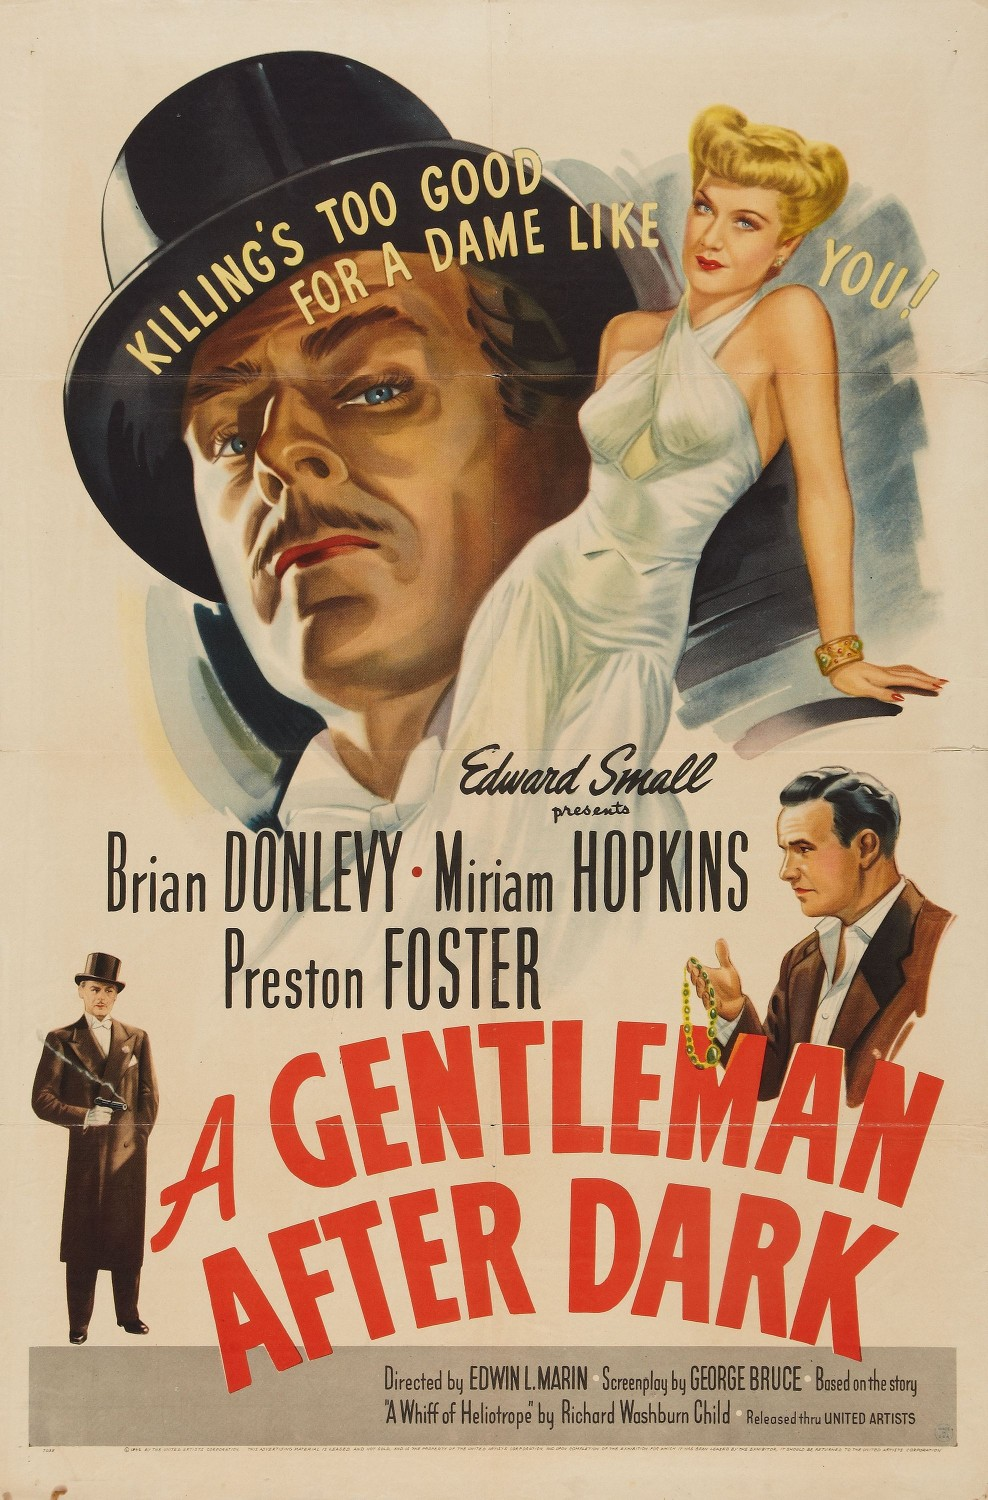 A Gentleman After Dark (1942)